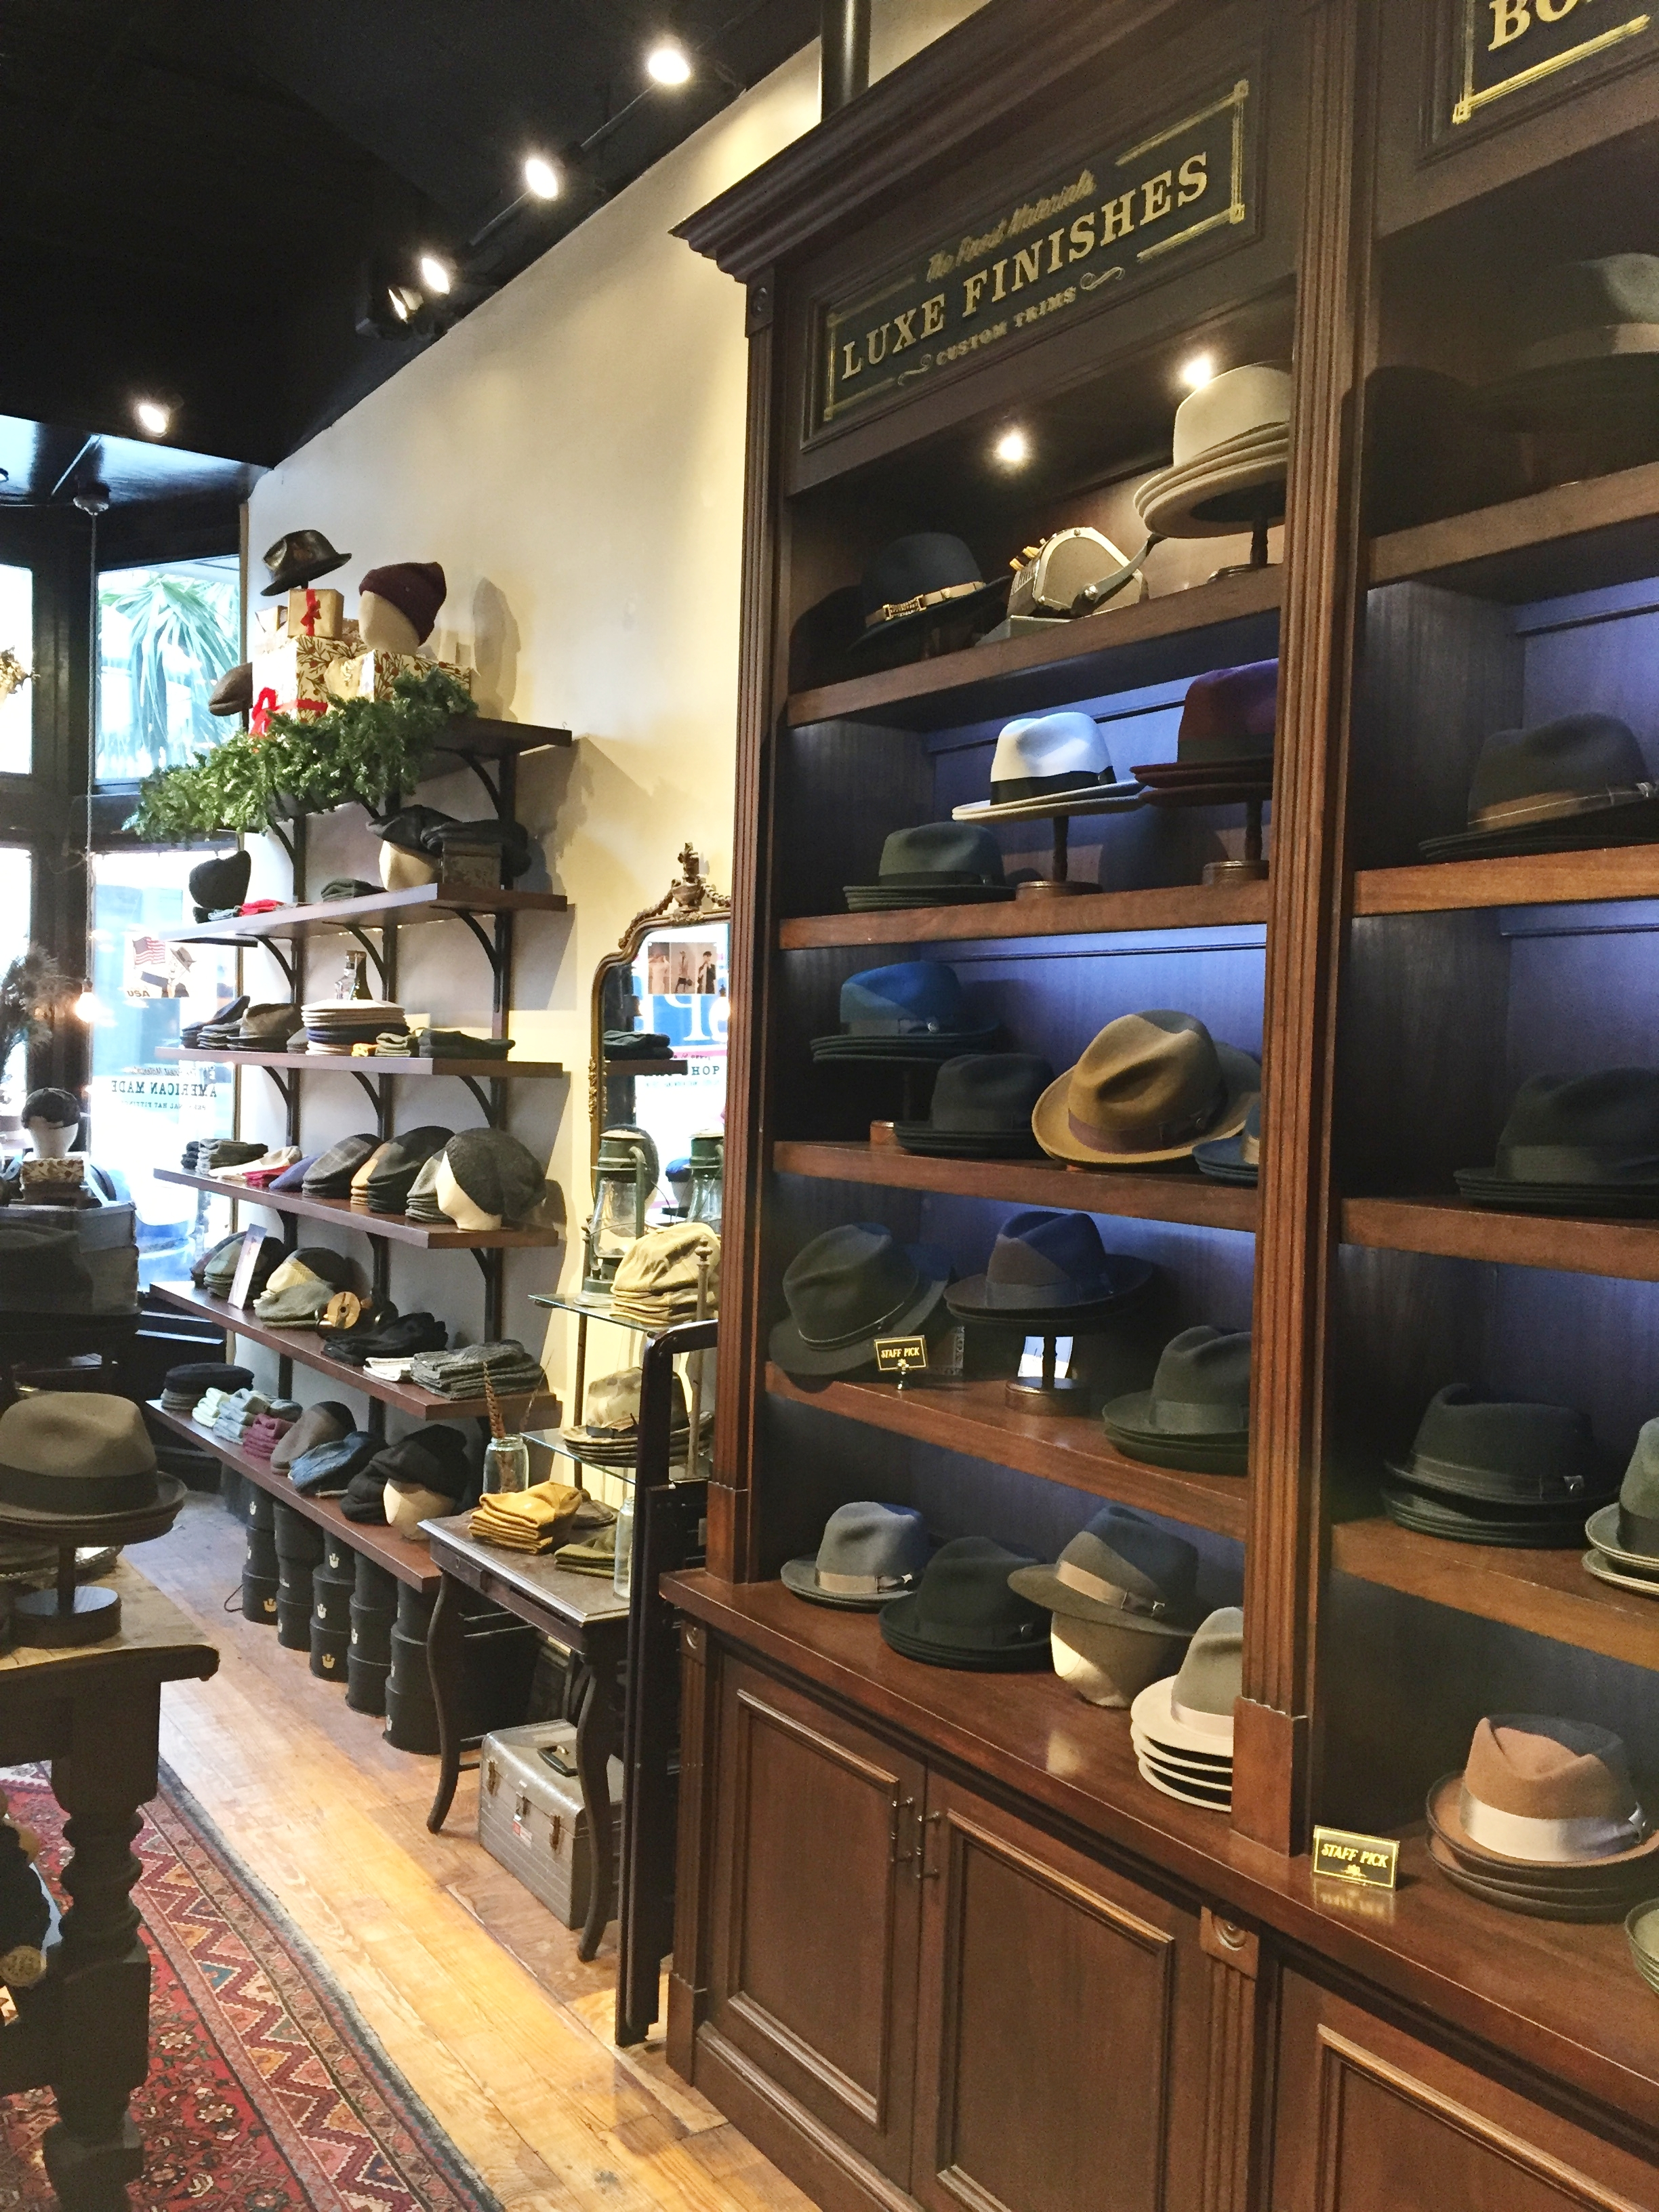 Goorin Brothers hat shop. Channeling my inner Don Draper or James Bond